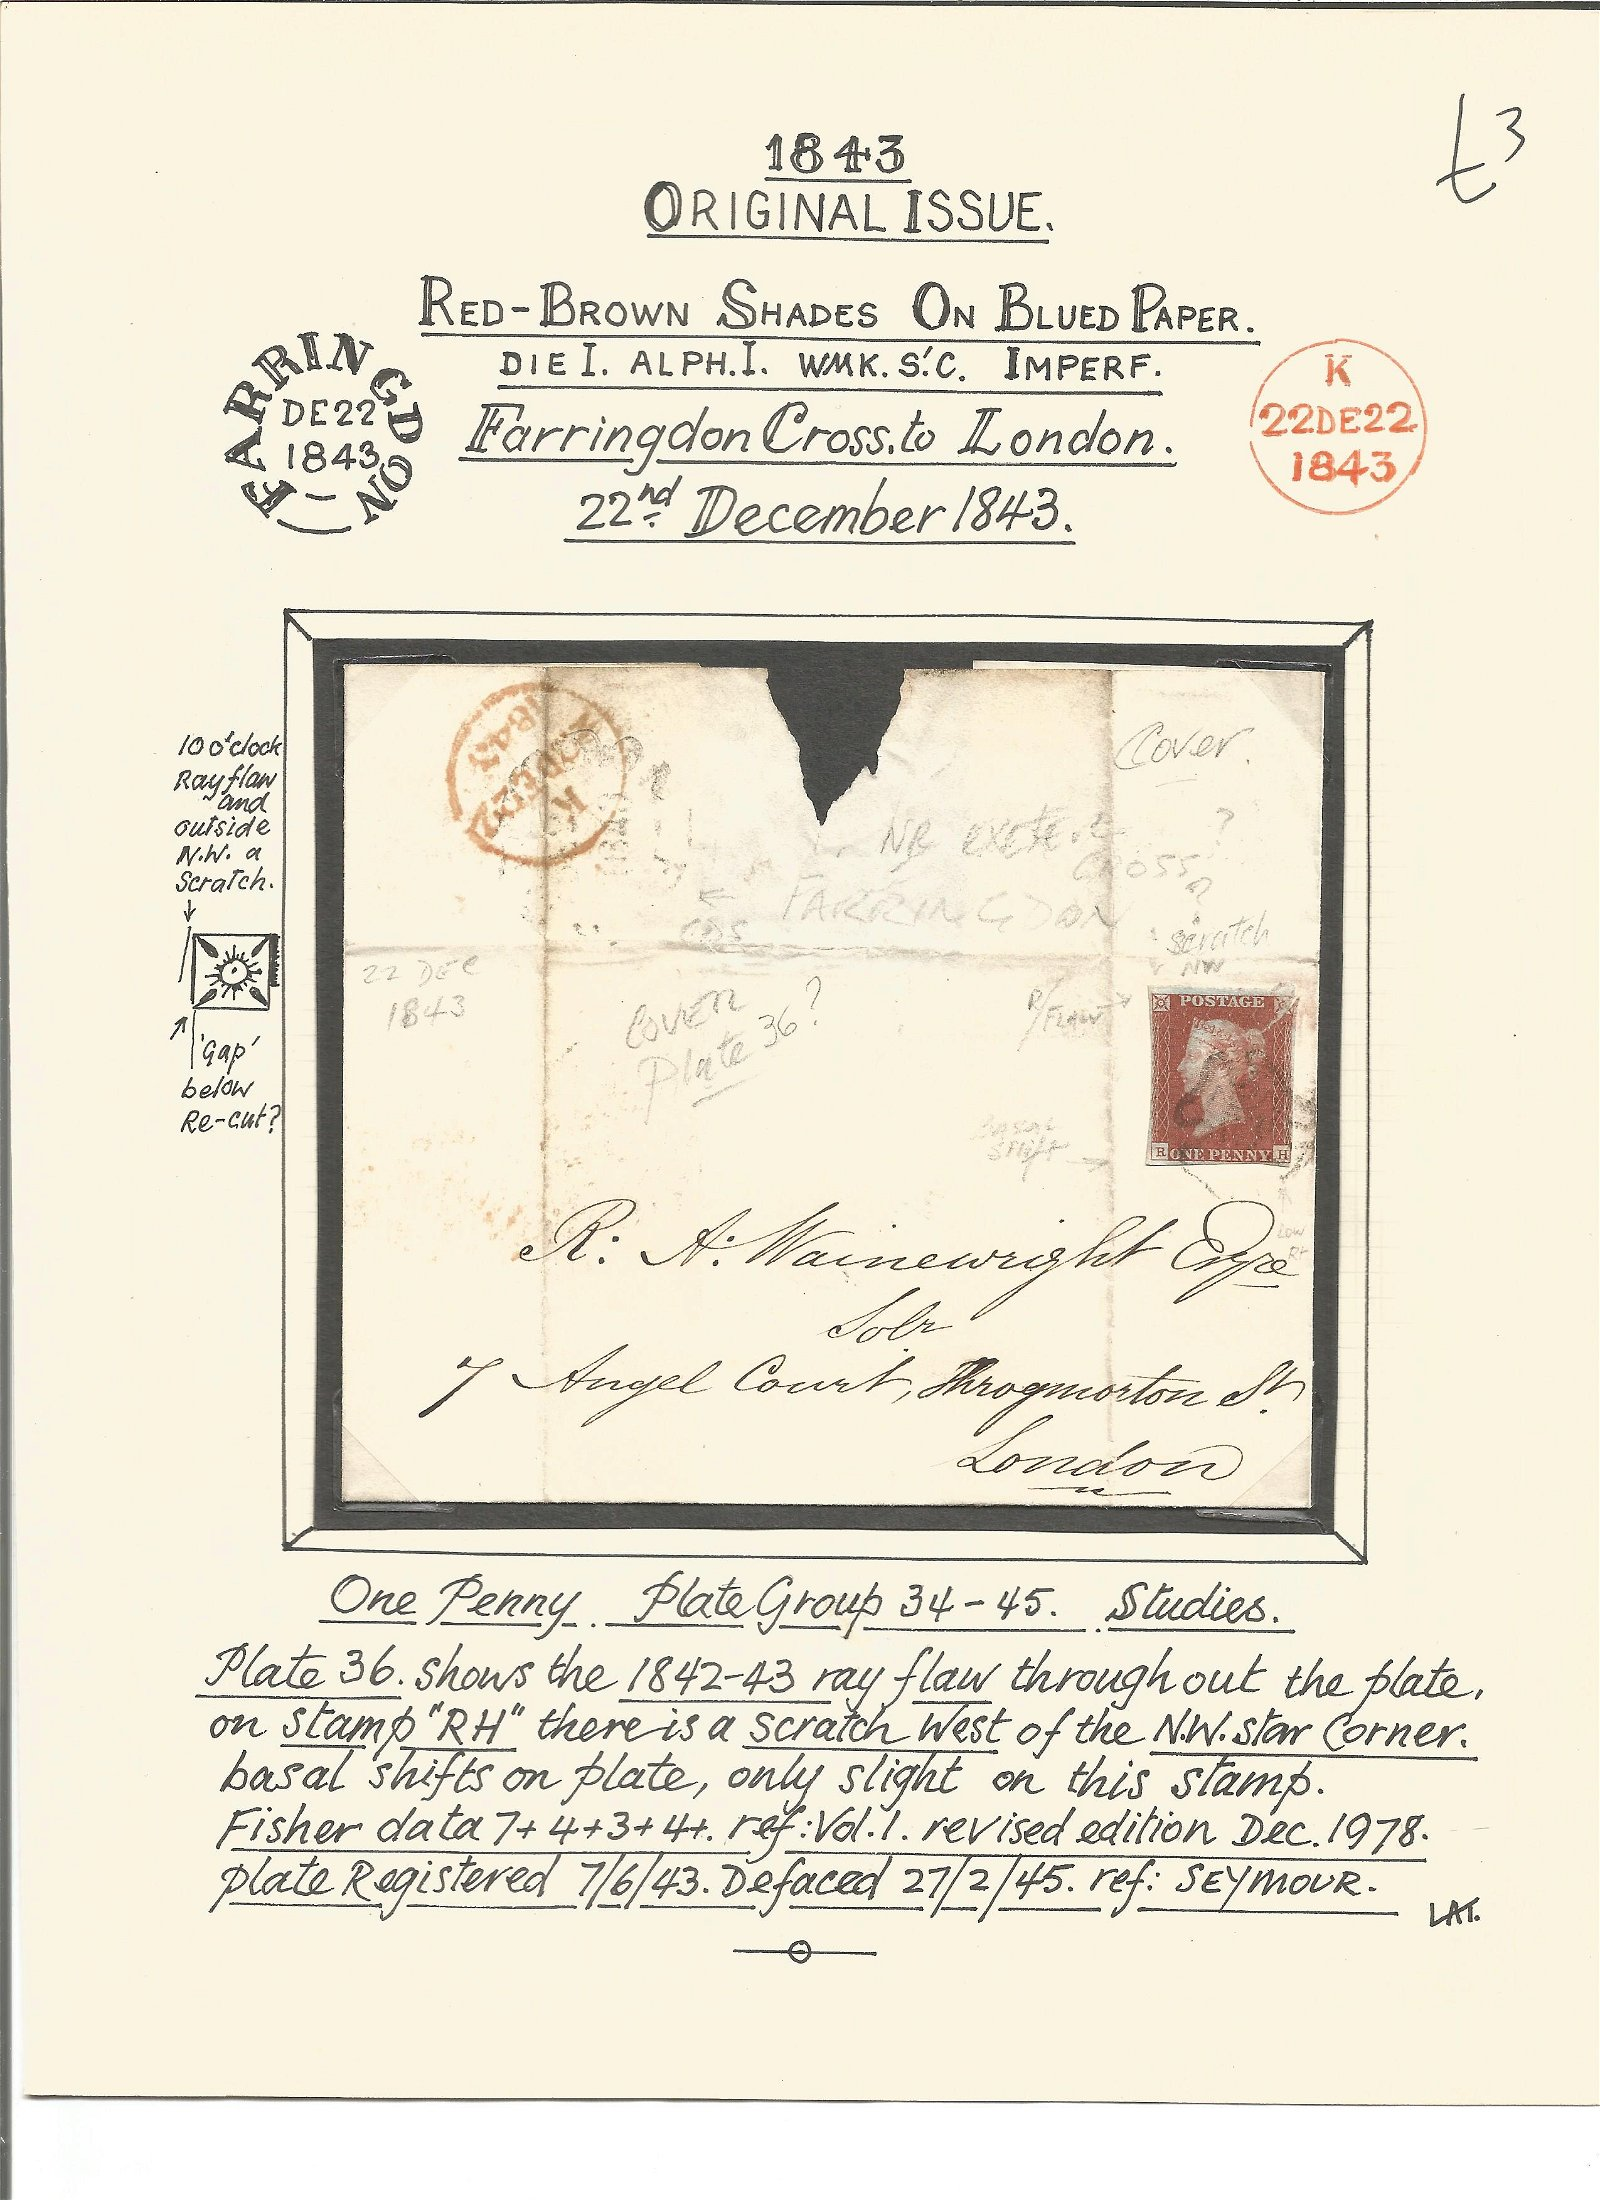 Postal History. 1843 original issue. Red brown shades